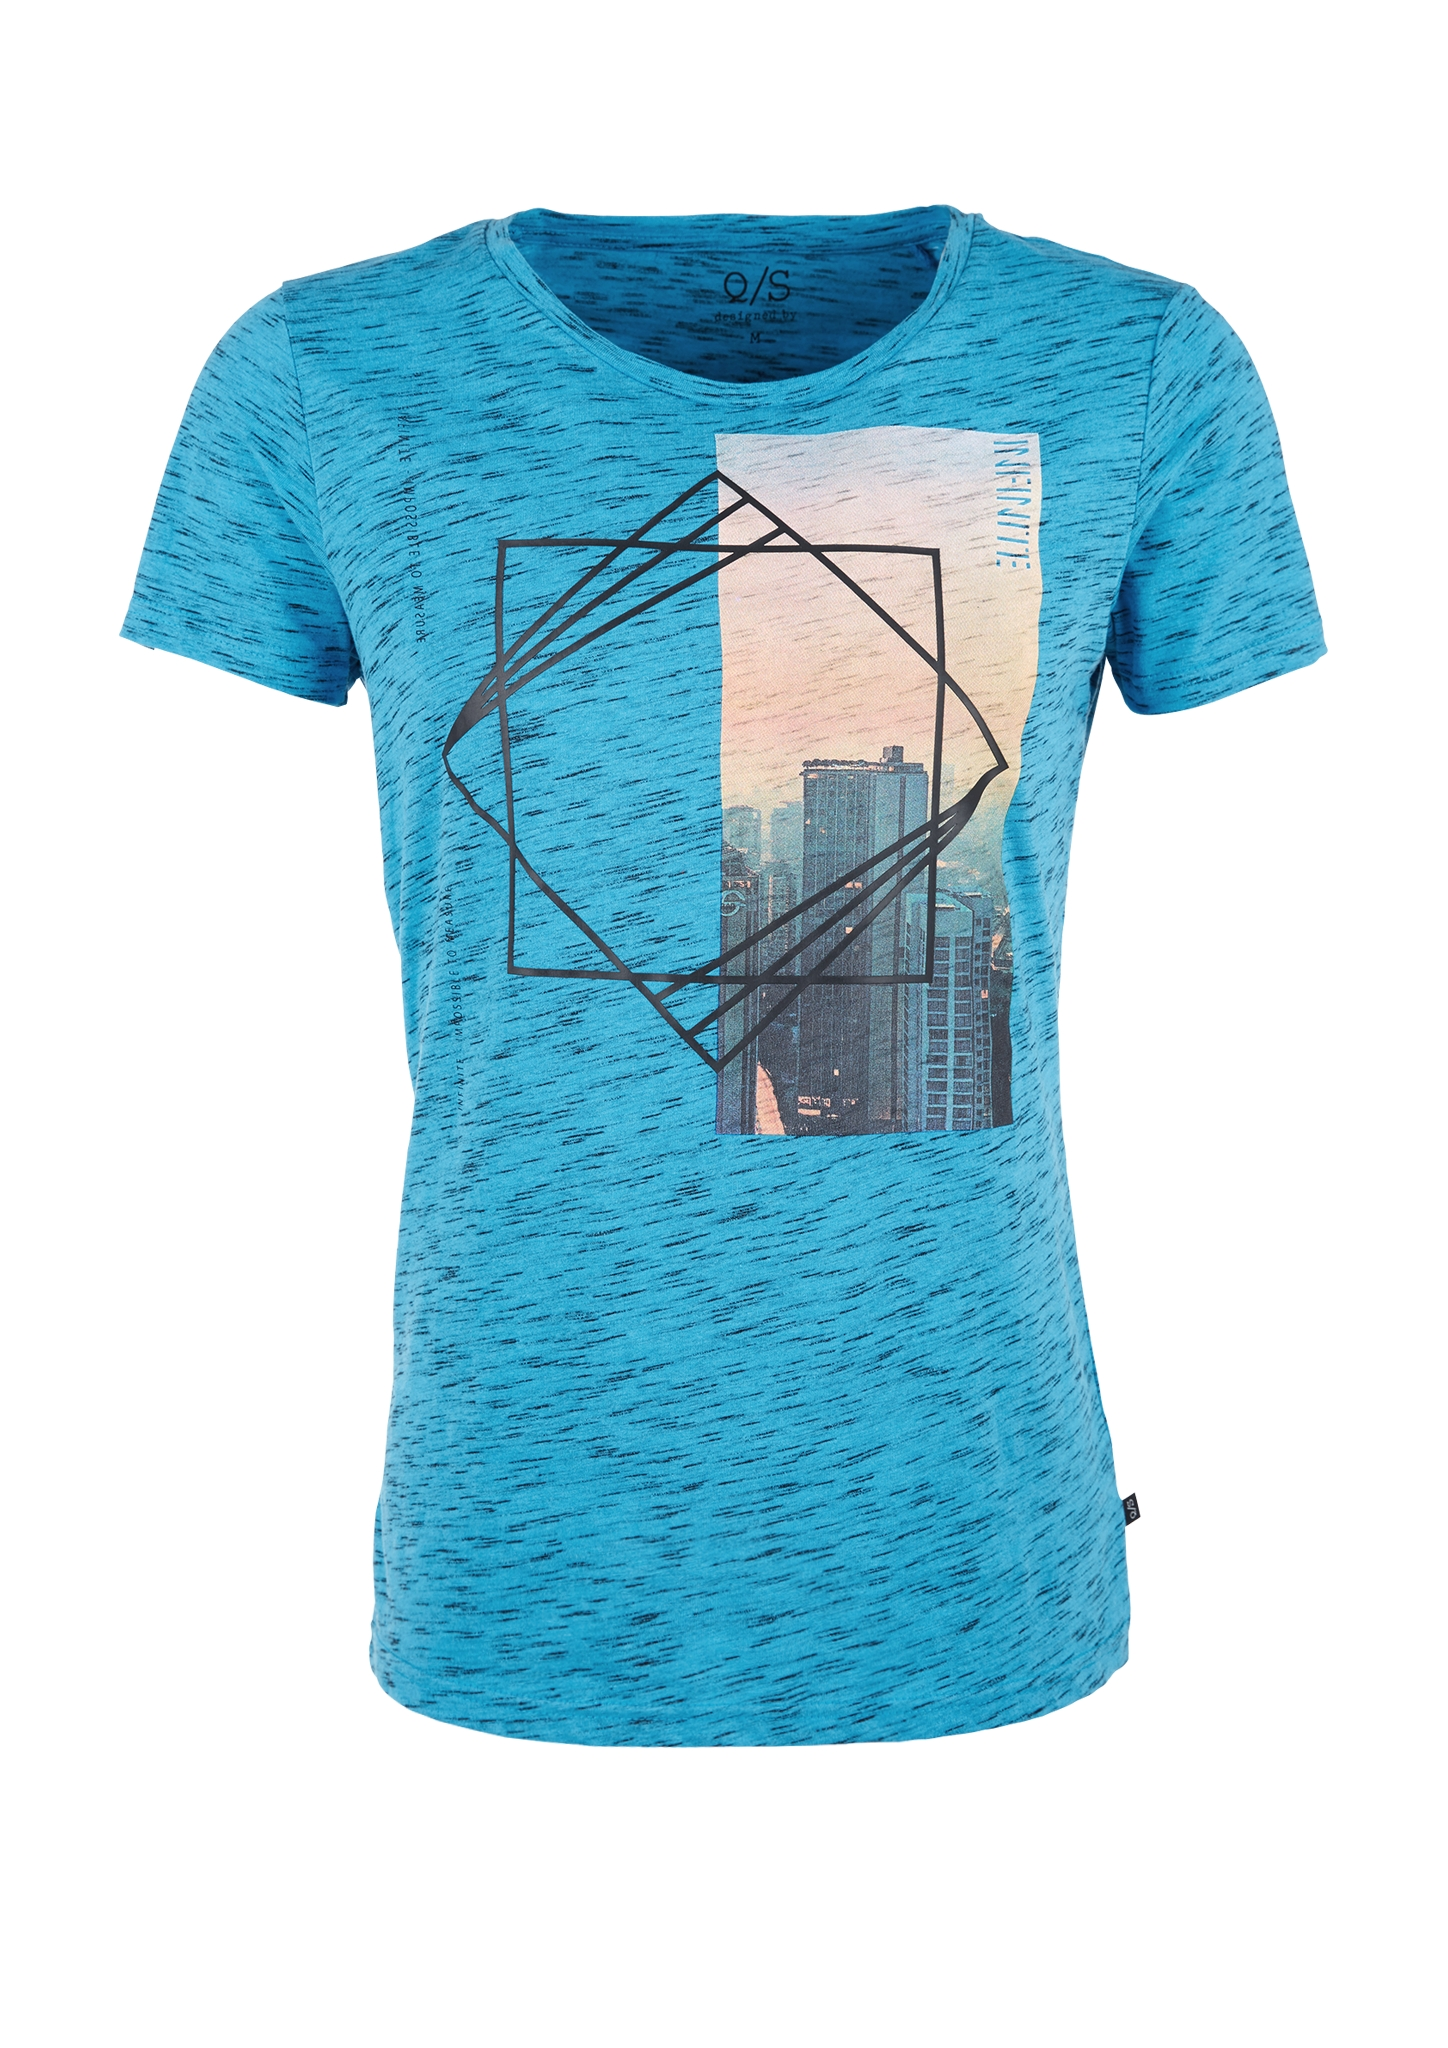 T-Shirt | Bekleidung > Shirts | Blau | 92% baumwolle -  8% polyester | Q/S designed by